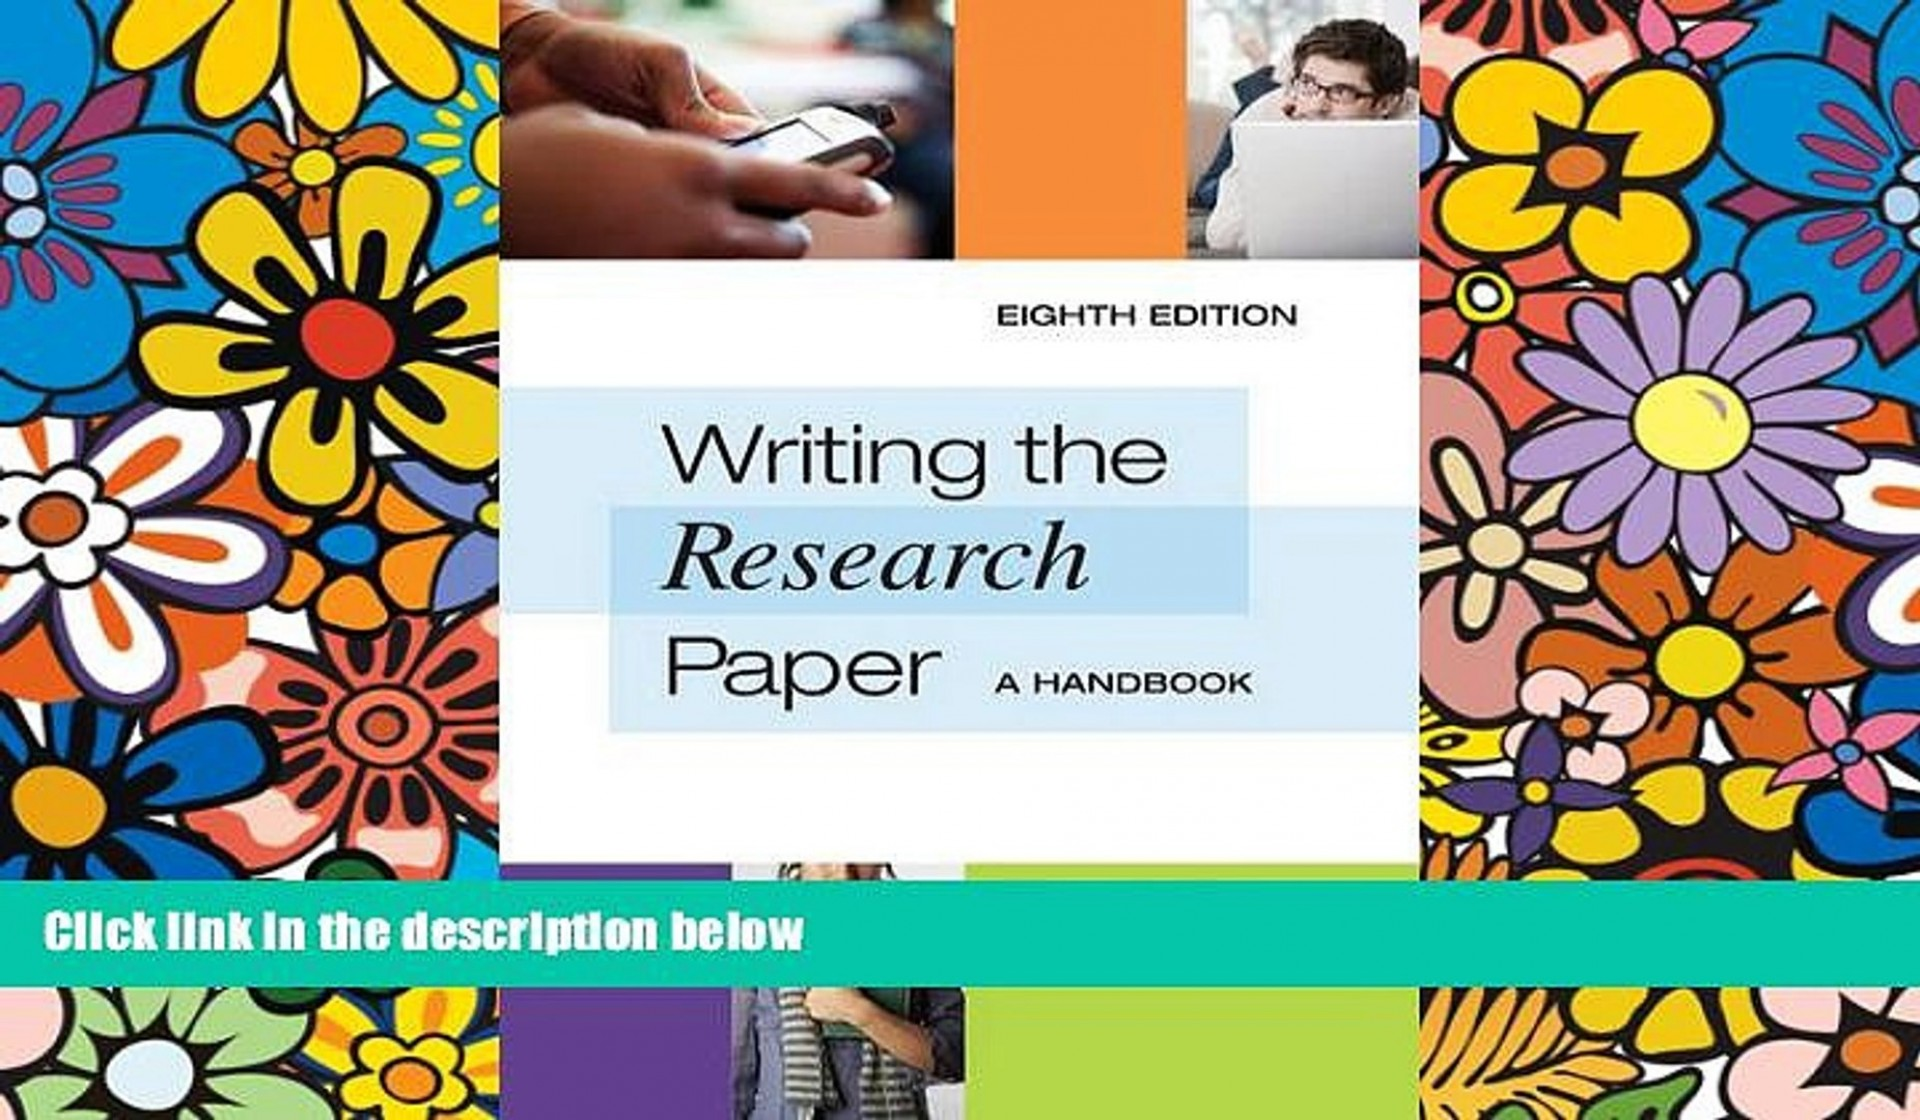 002 Writing The Research Paper Handbook X1080 Wonderful A 8th Edition 1920